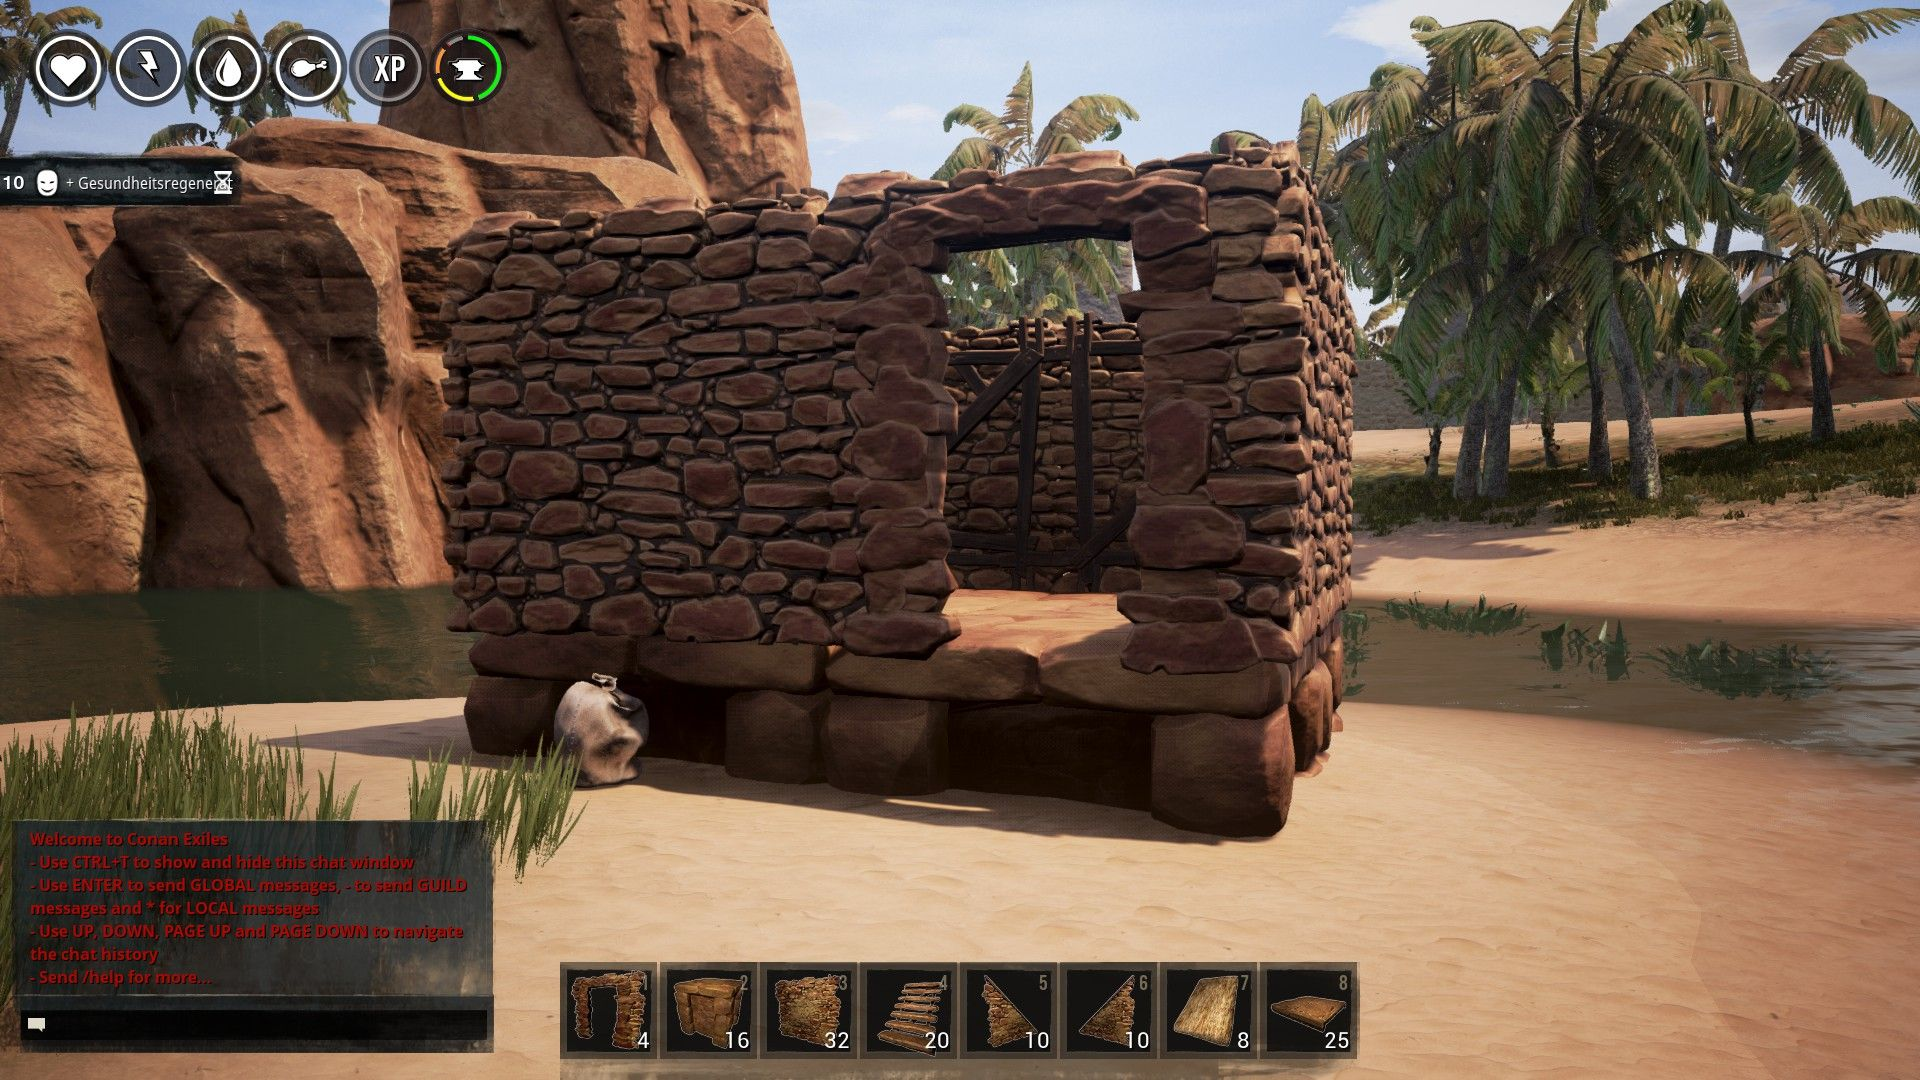 Conan Exiles - How to Build the Roofs